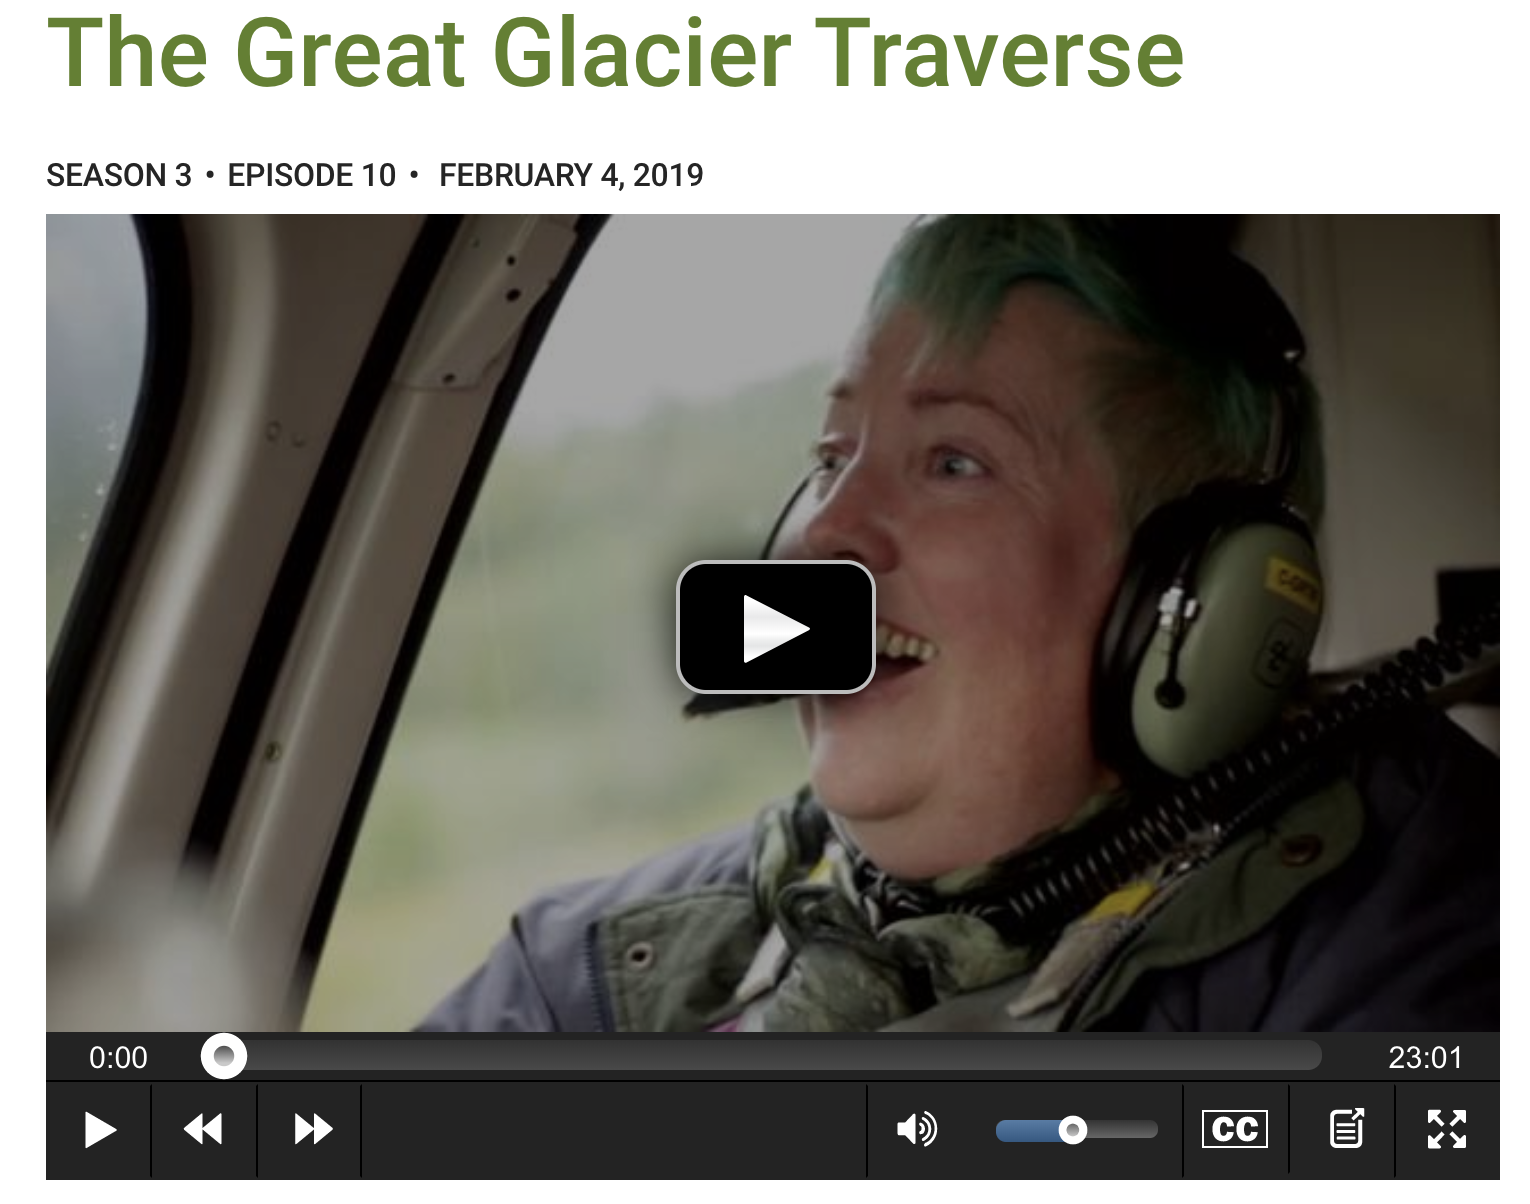 The Great Glacier Traverse